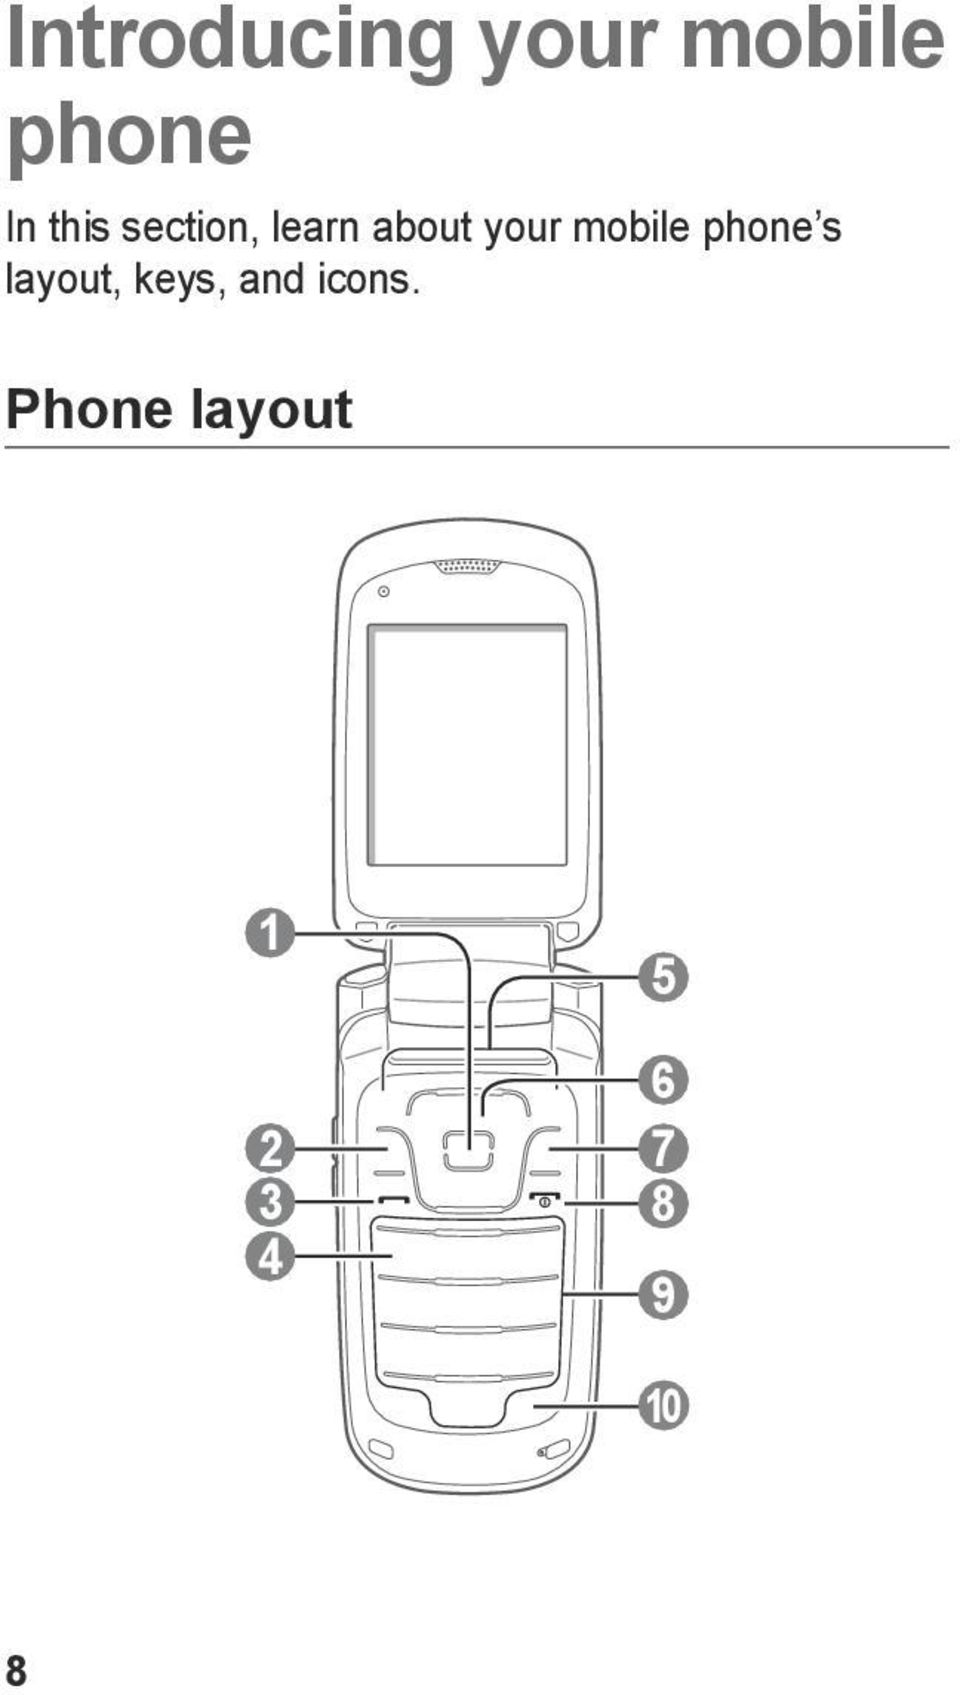 mobile phone s layout, keys, and